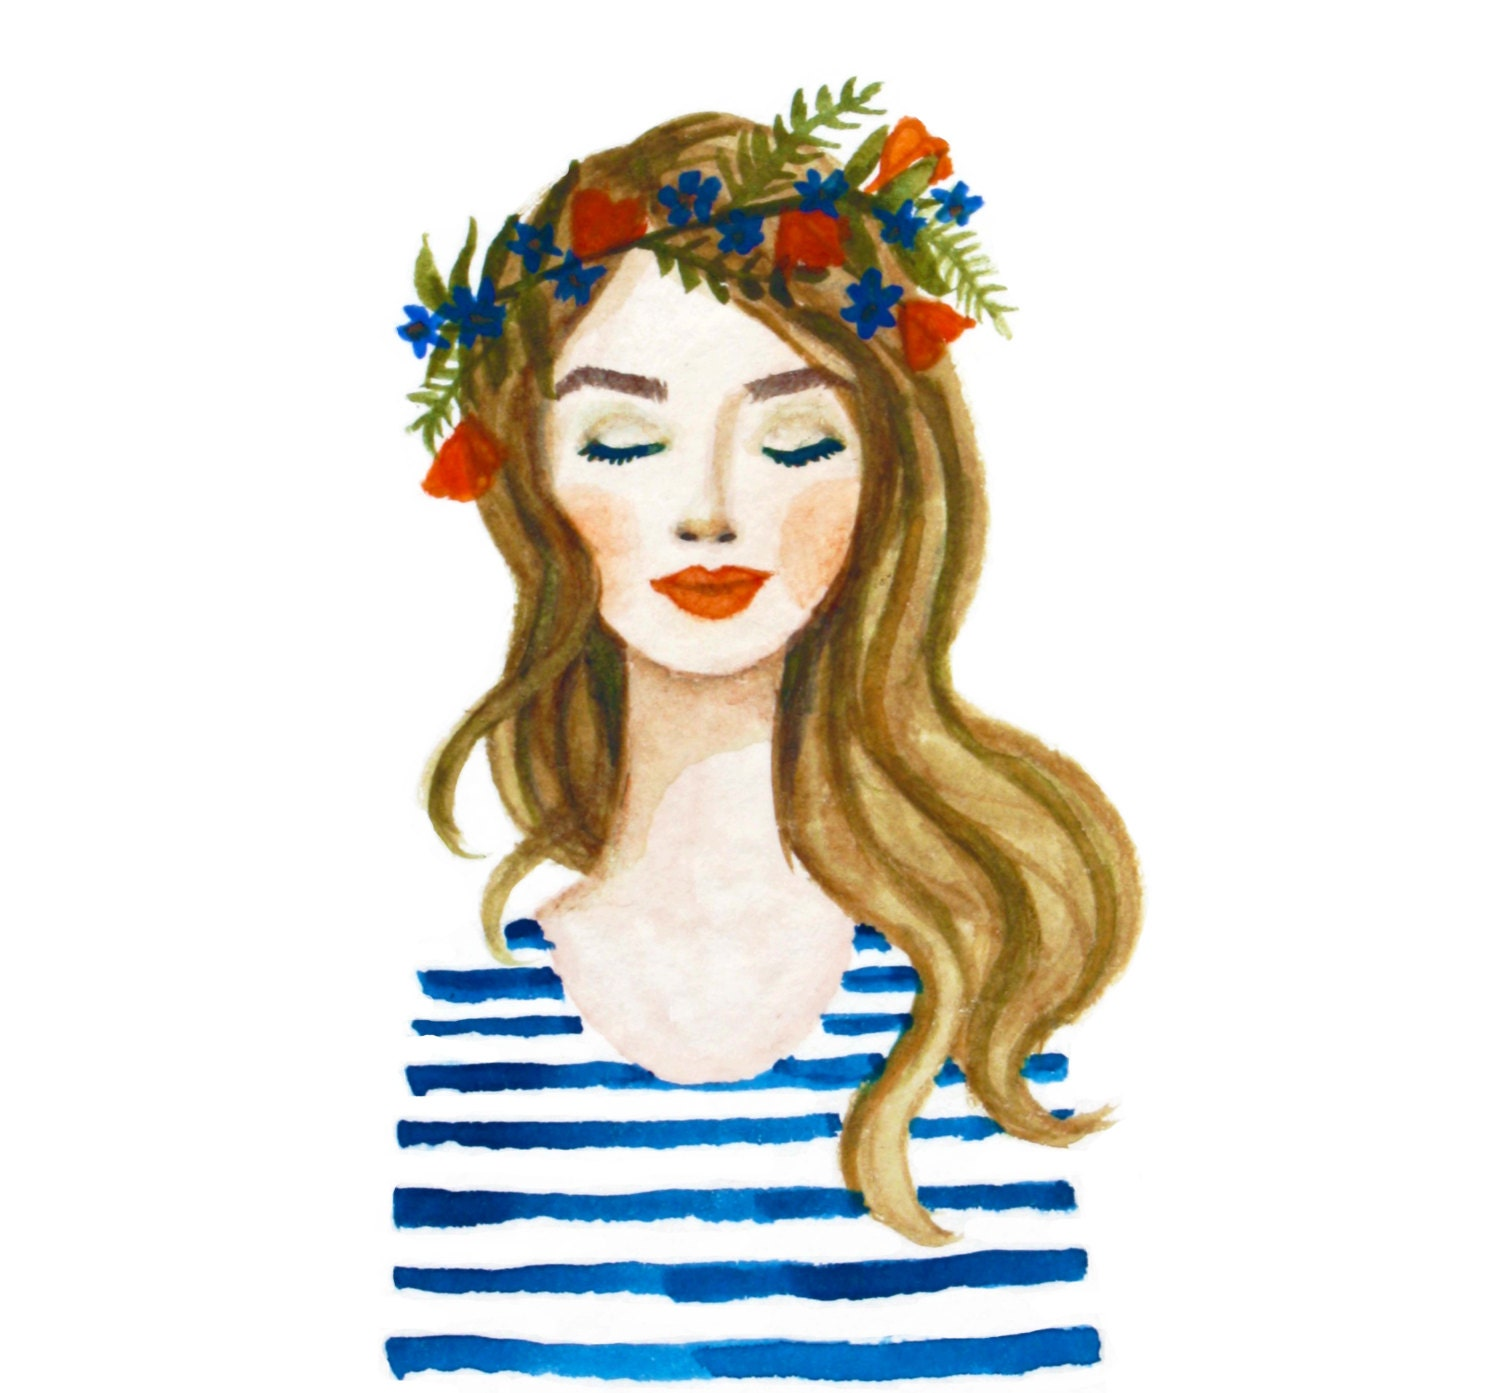 Girl with flower crown drawing - photo#48